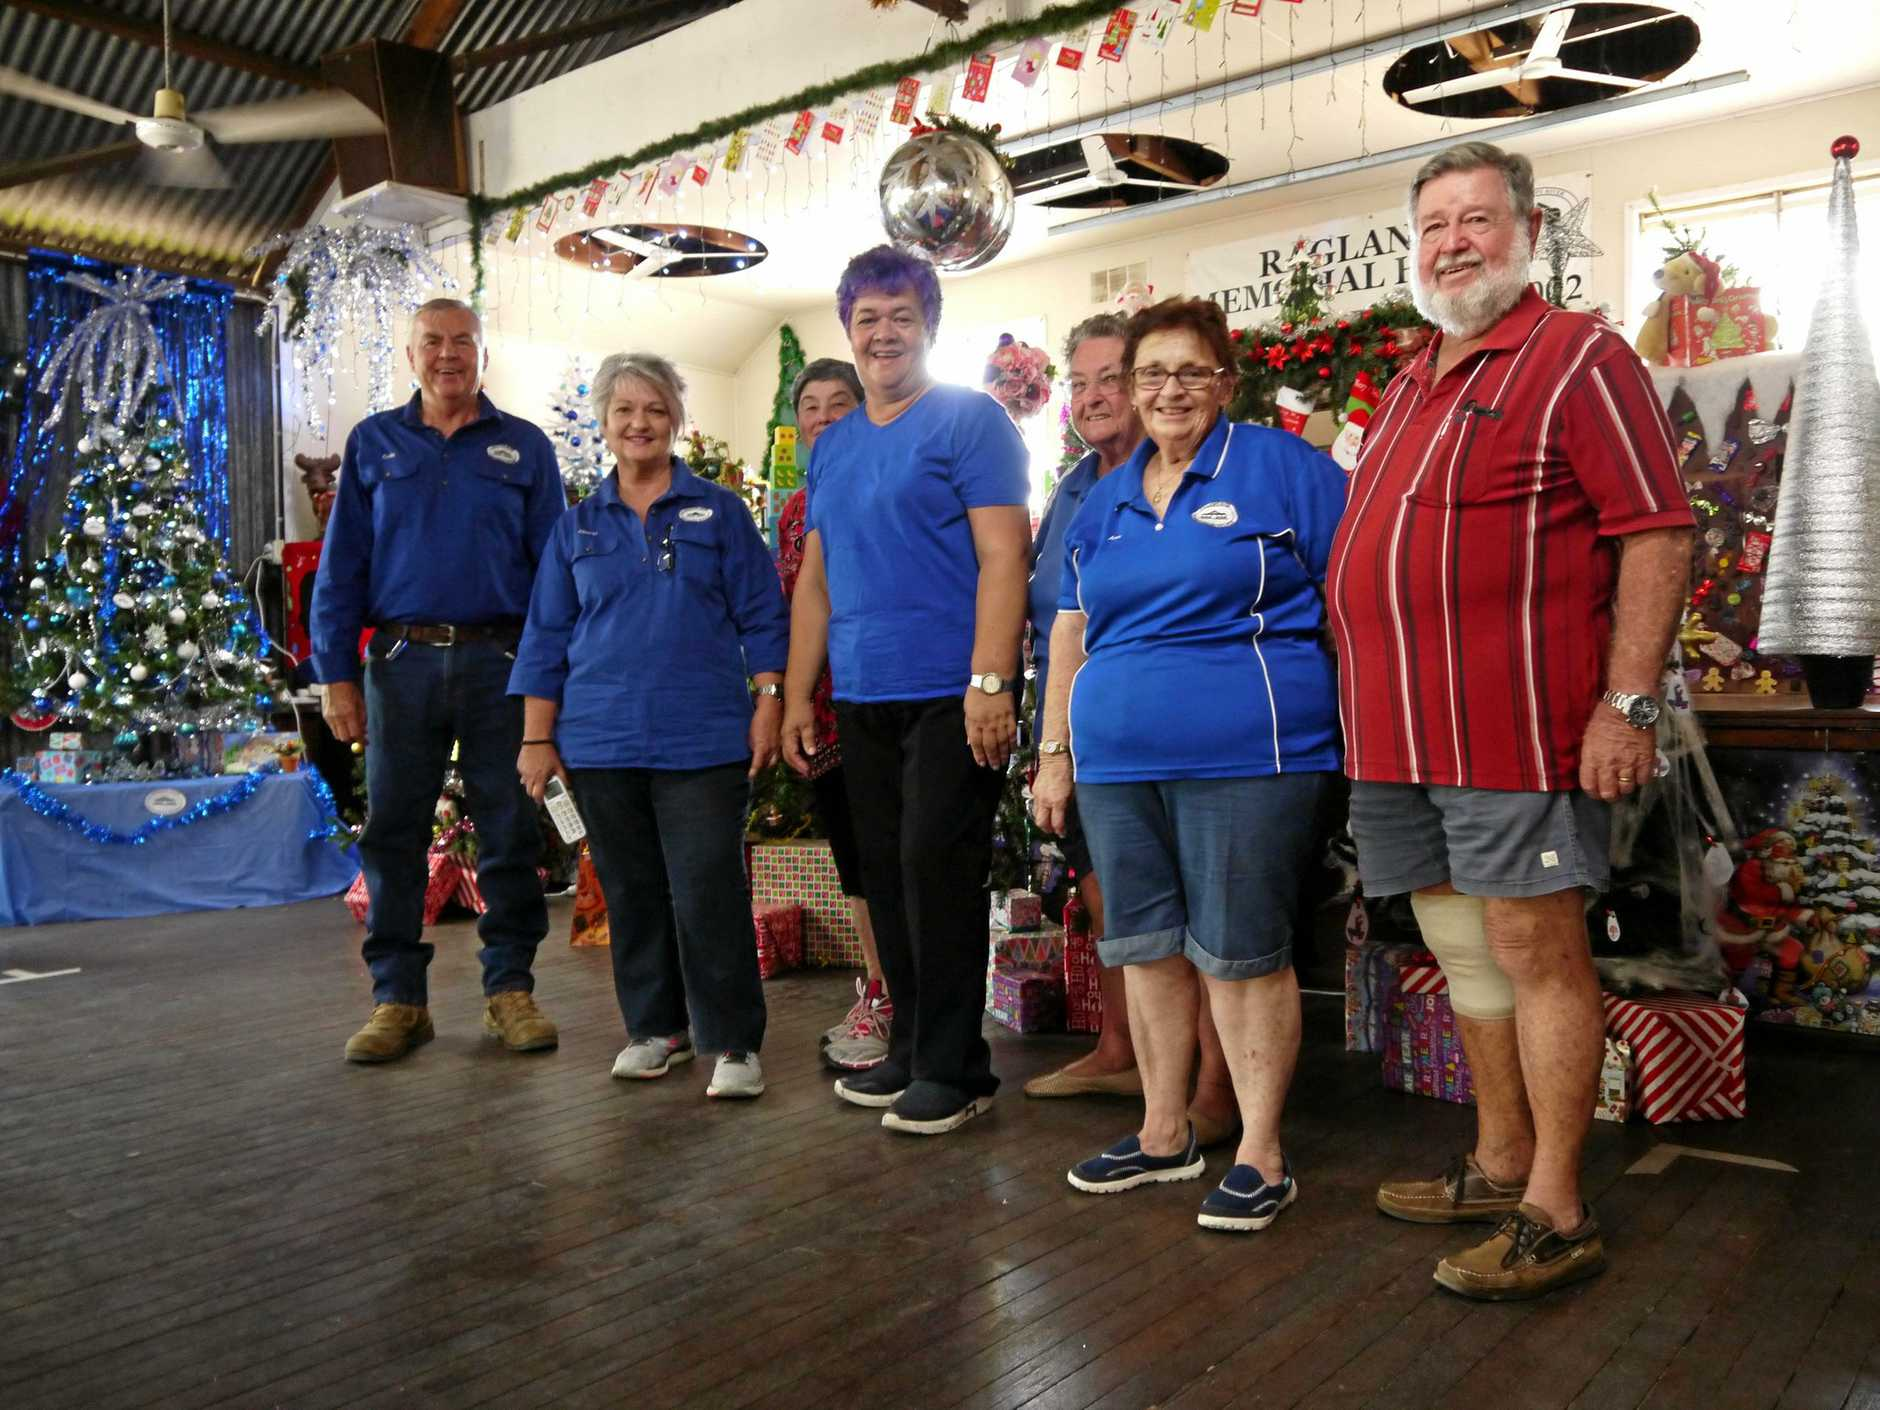 RECYCLED XMAS: L-R Colin and Cheryl Druery, Vivien Williams, Marcia Rickman, Ann Annand Lorraine Christopher Peter Annand at the Calliope Historical Village's recycled Christmas tree display.